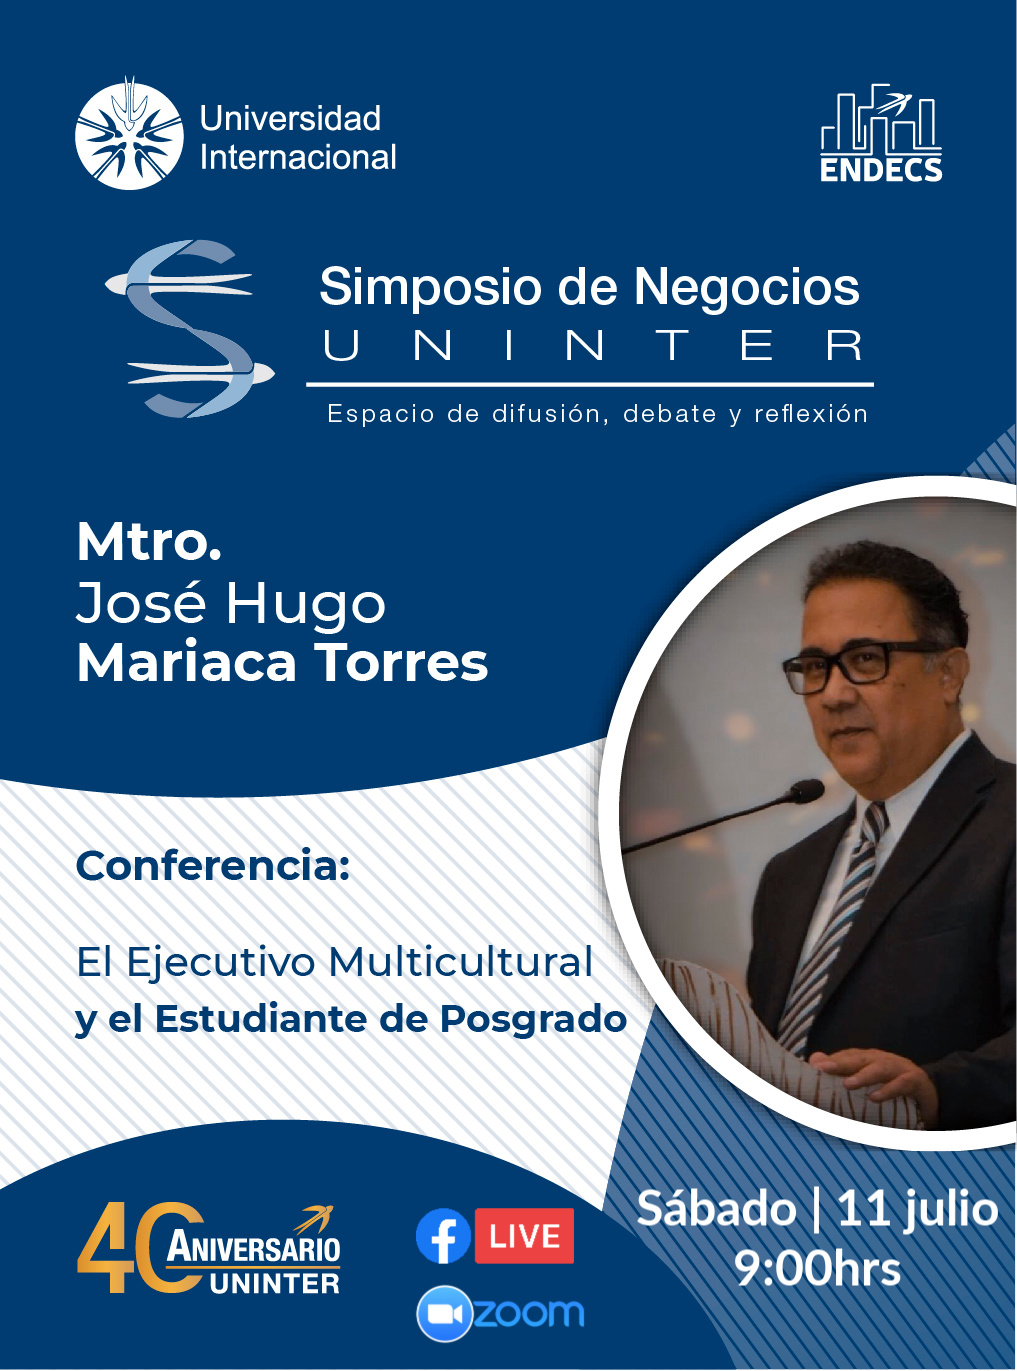 Conferencista Mtro Jose Hugo Mariaca Torres